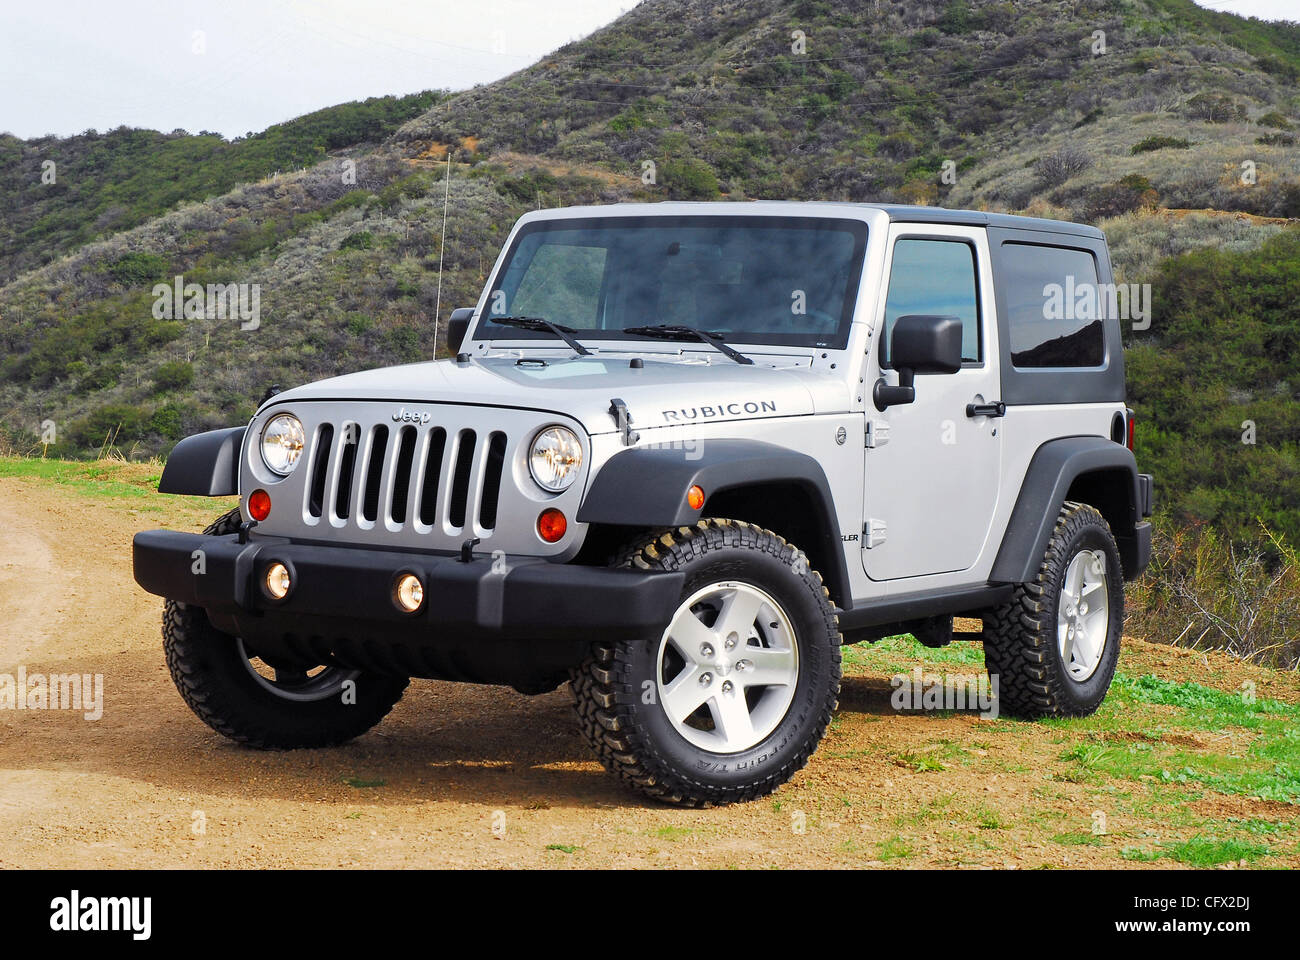 Charming Beauty Right 2007 Jeep Wrangler Rubicon Two Door   Stock Image